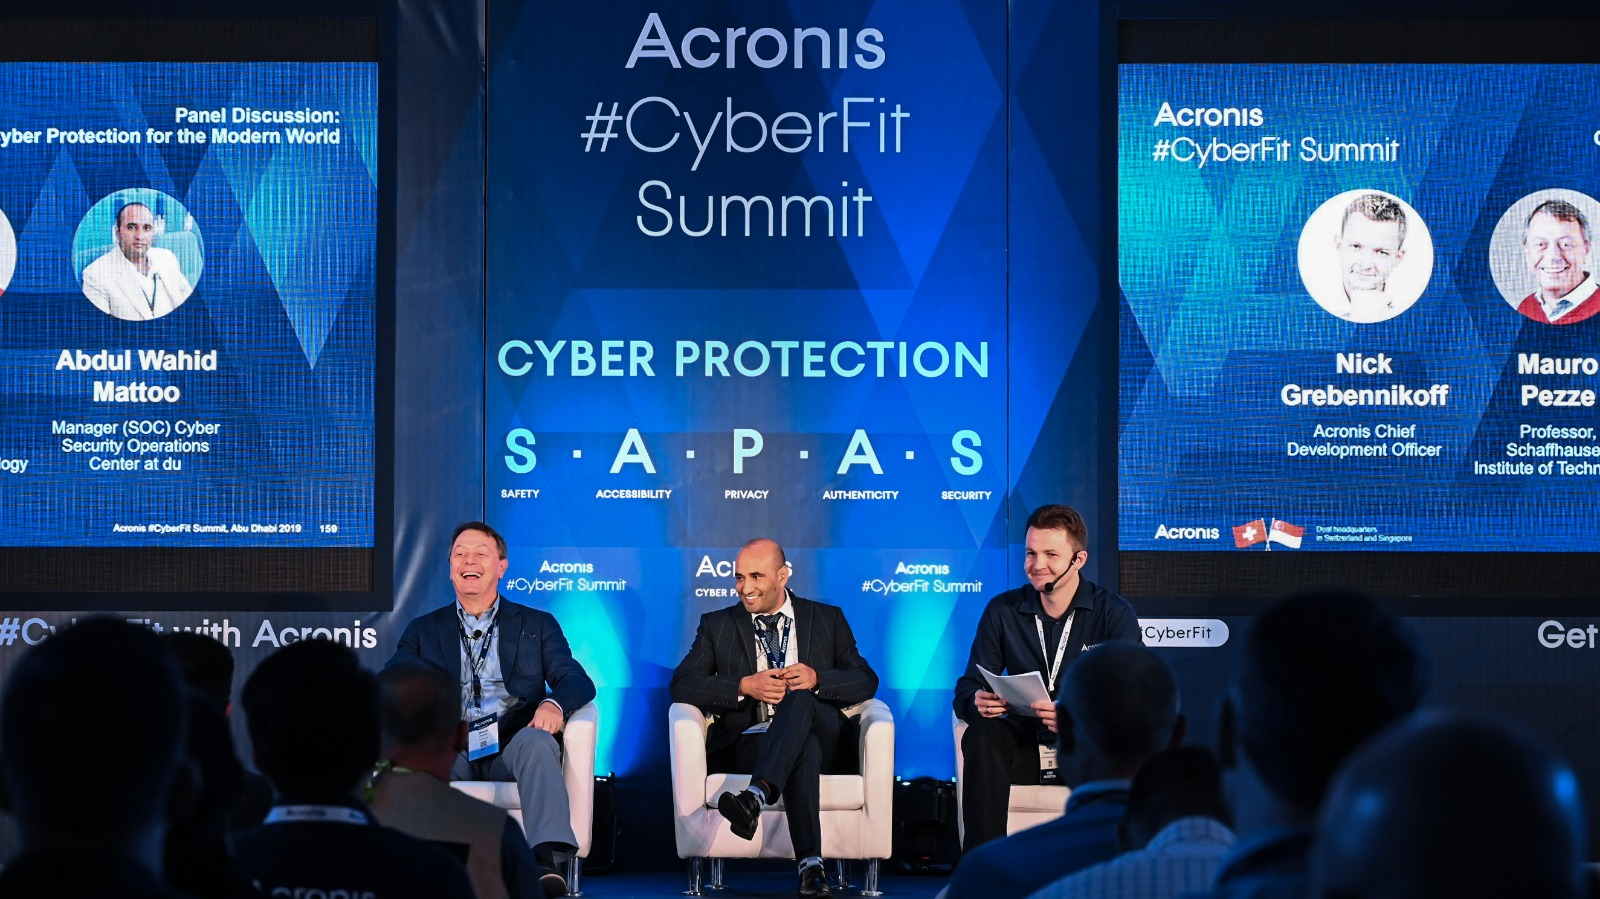 Panelists discussed security threats, security technologies, and the shortage of skills in the market.